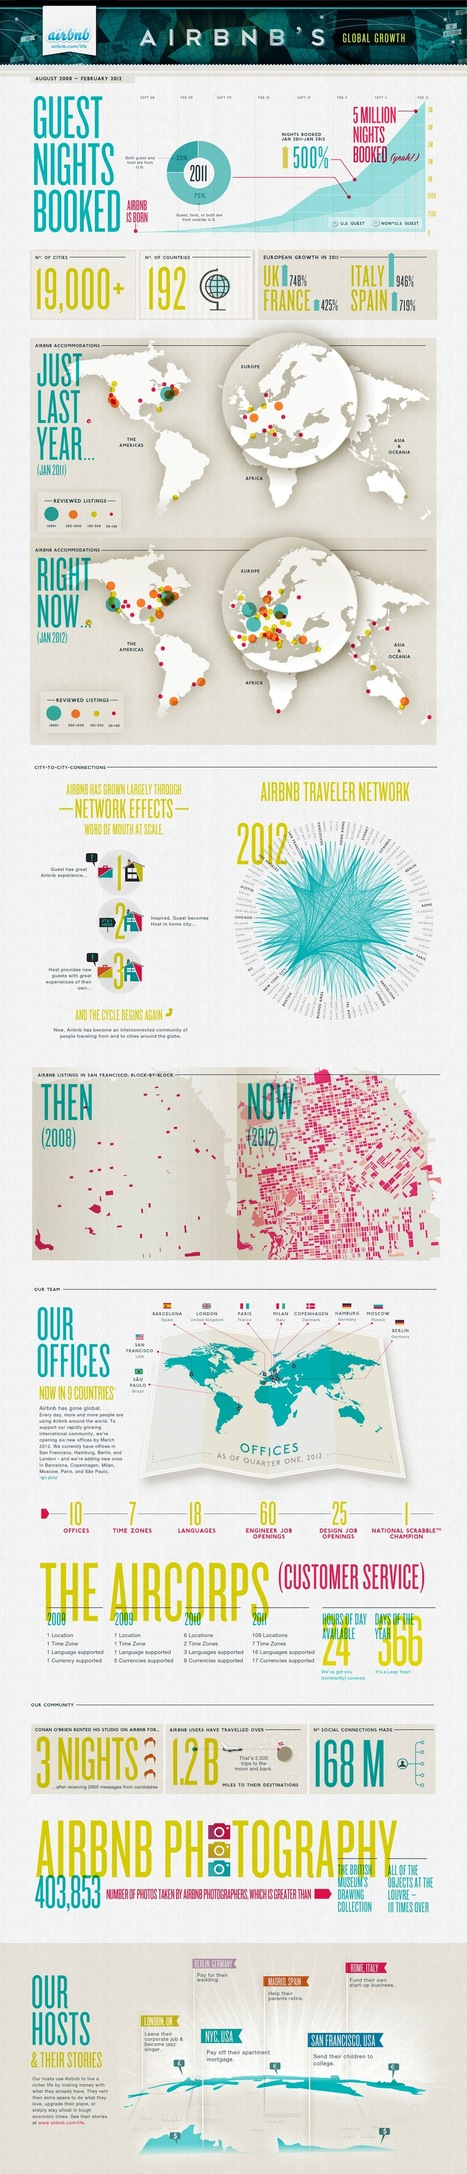 The Unstoppable Rise of Airbnb [Infographic] @futureboy | Travel Apps | Scoop.it